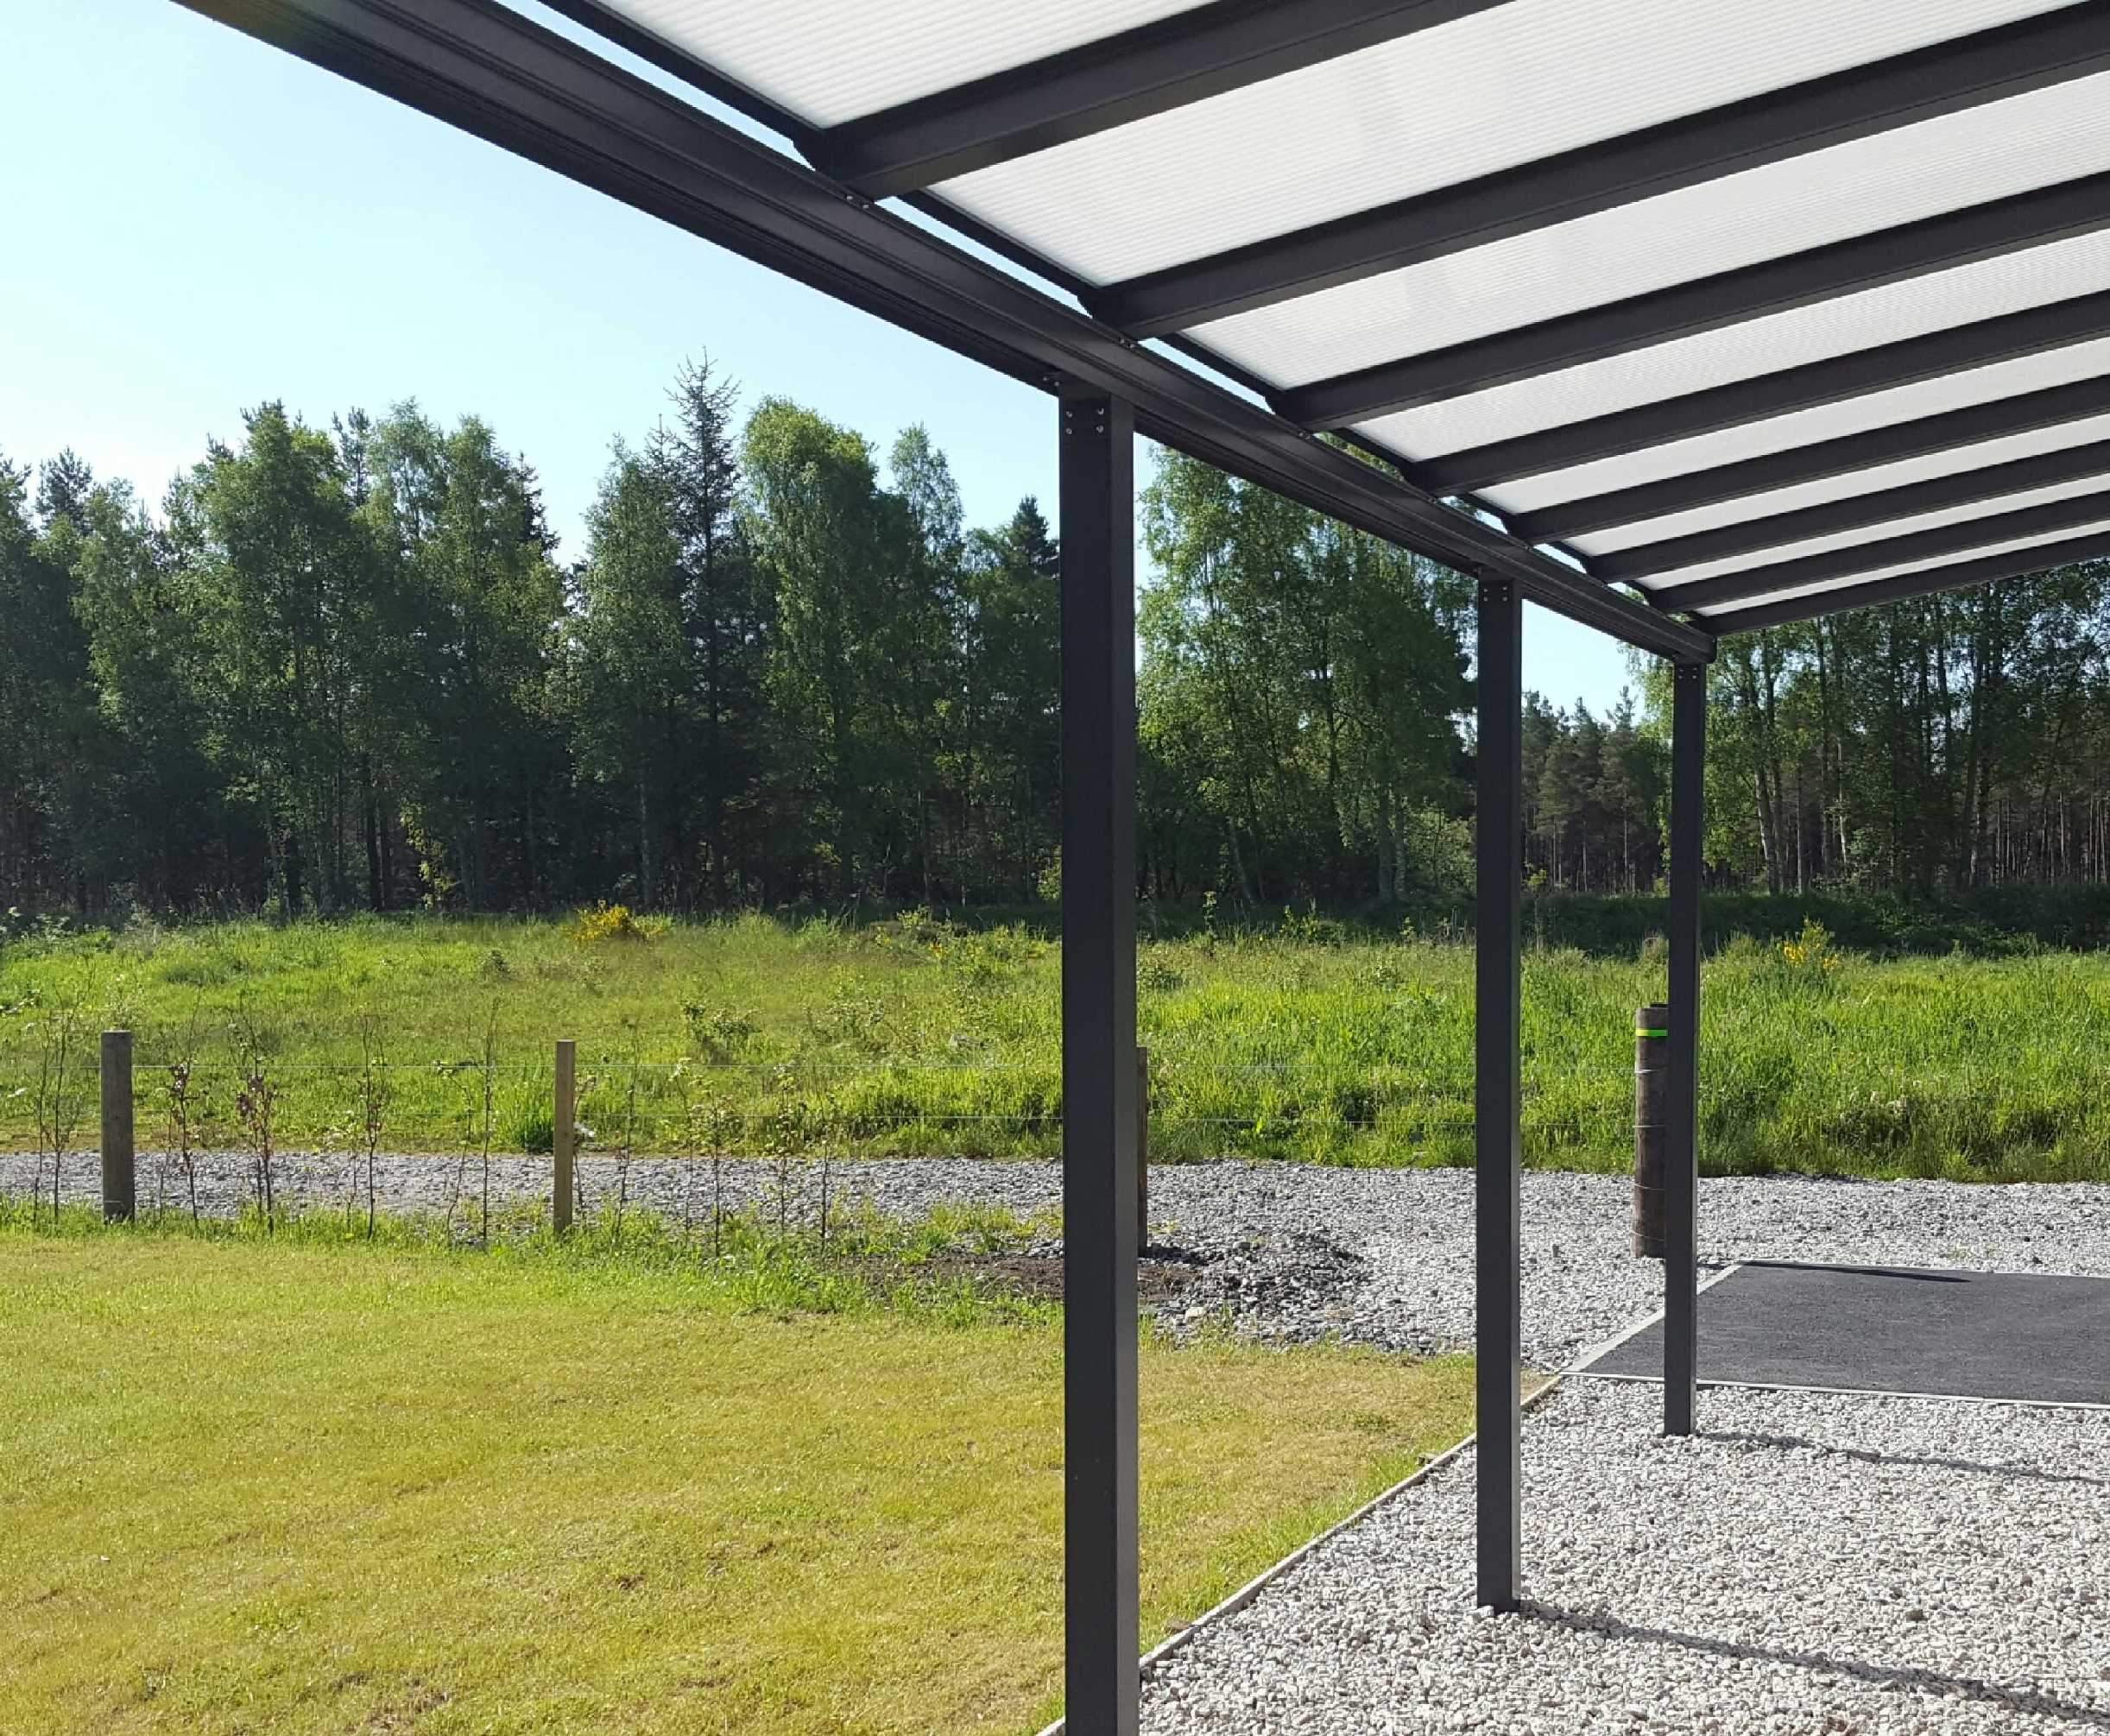 Omega Smart Lean-To Canopy, Anthracite Grey, 16mm Polycarbonate Glazing - 3.1m (W) x 3.0m (P), (2) Supporting Posts